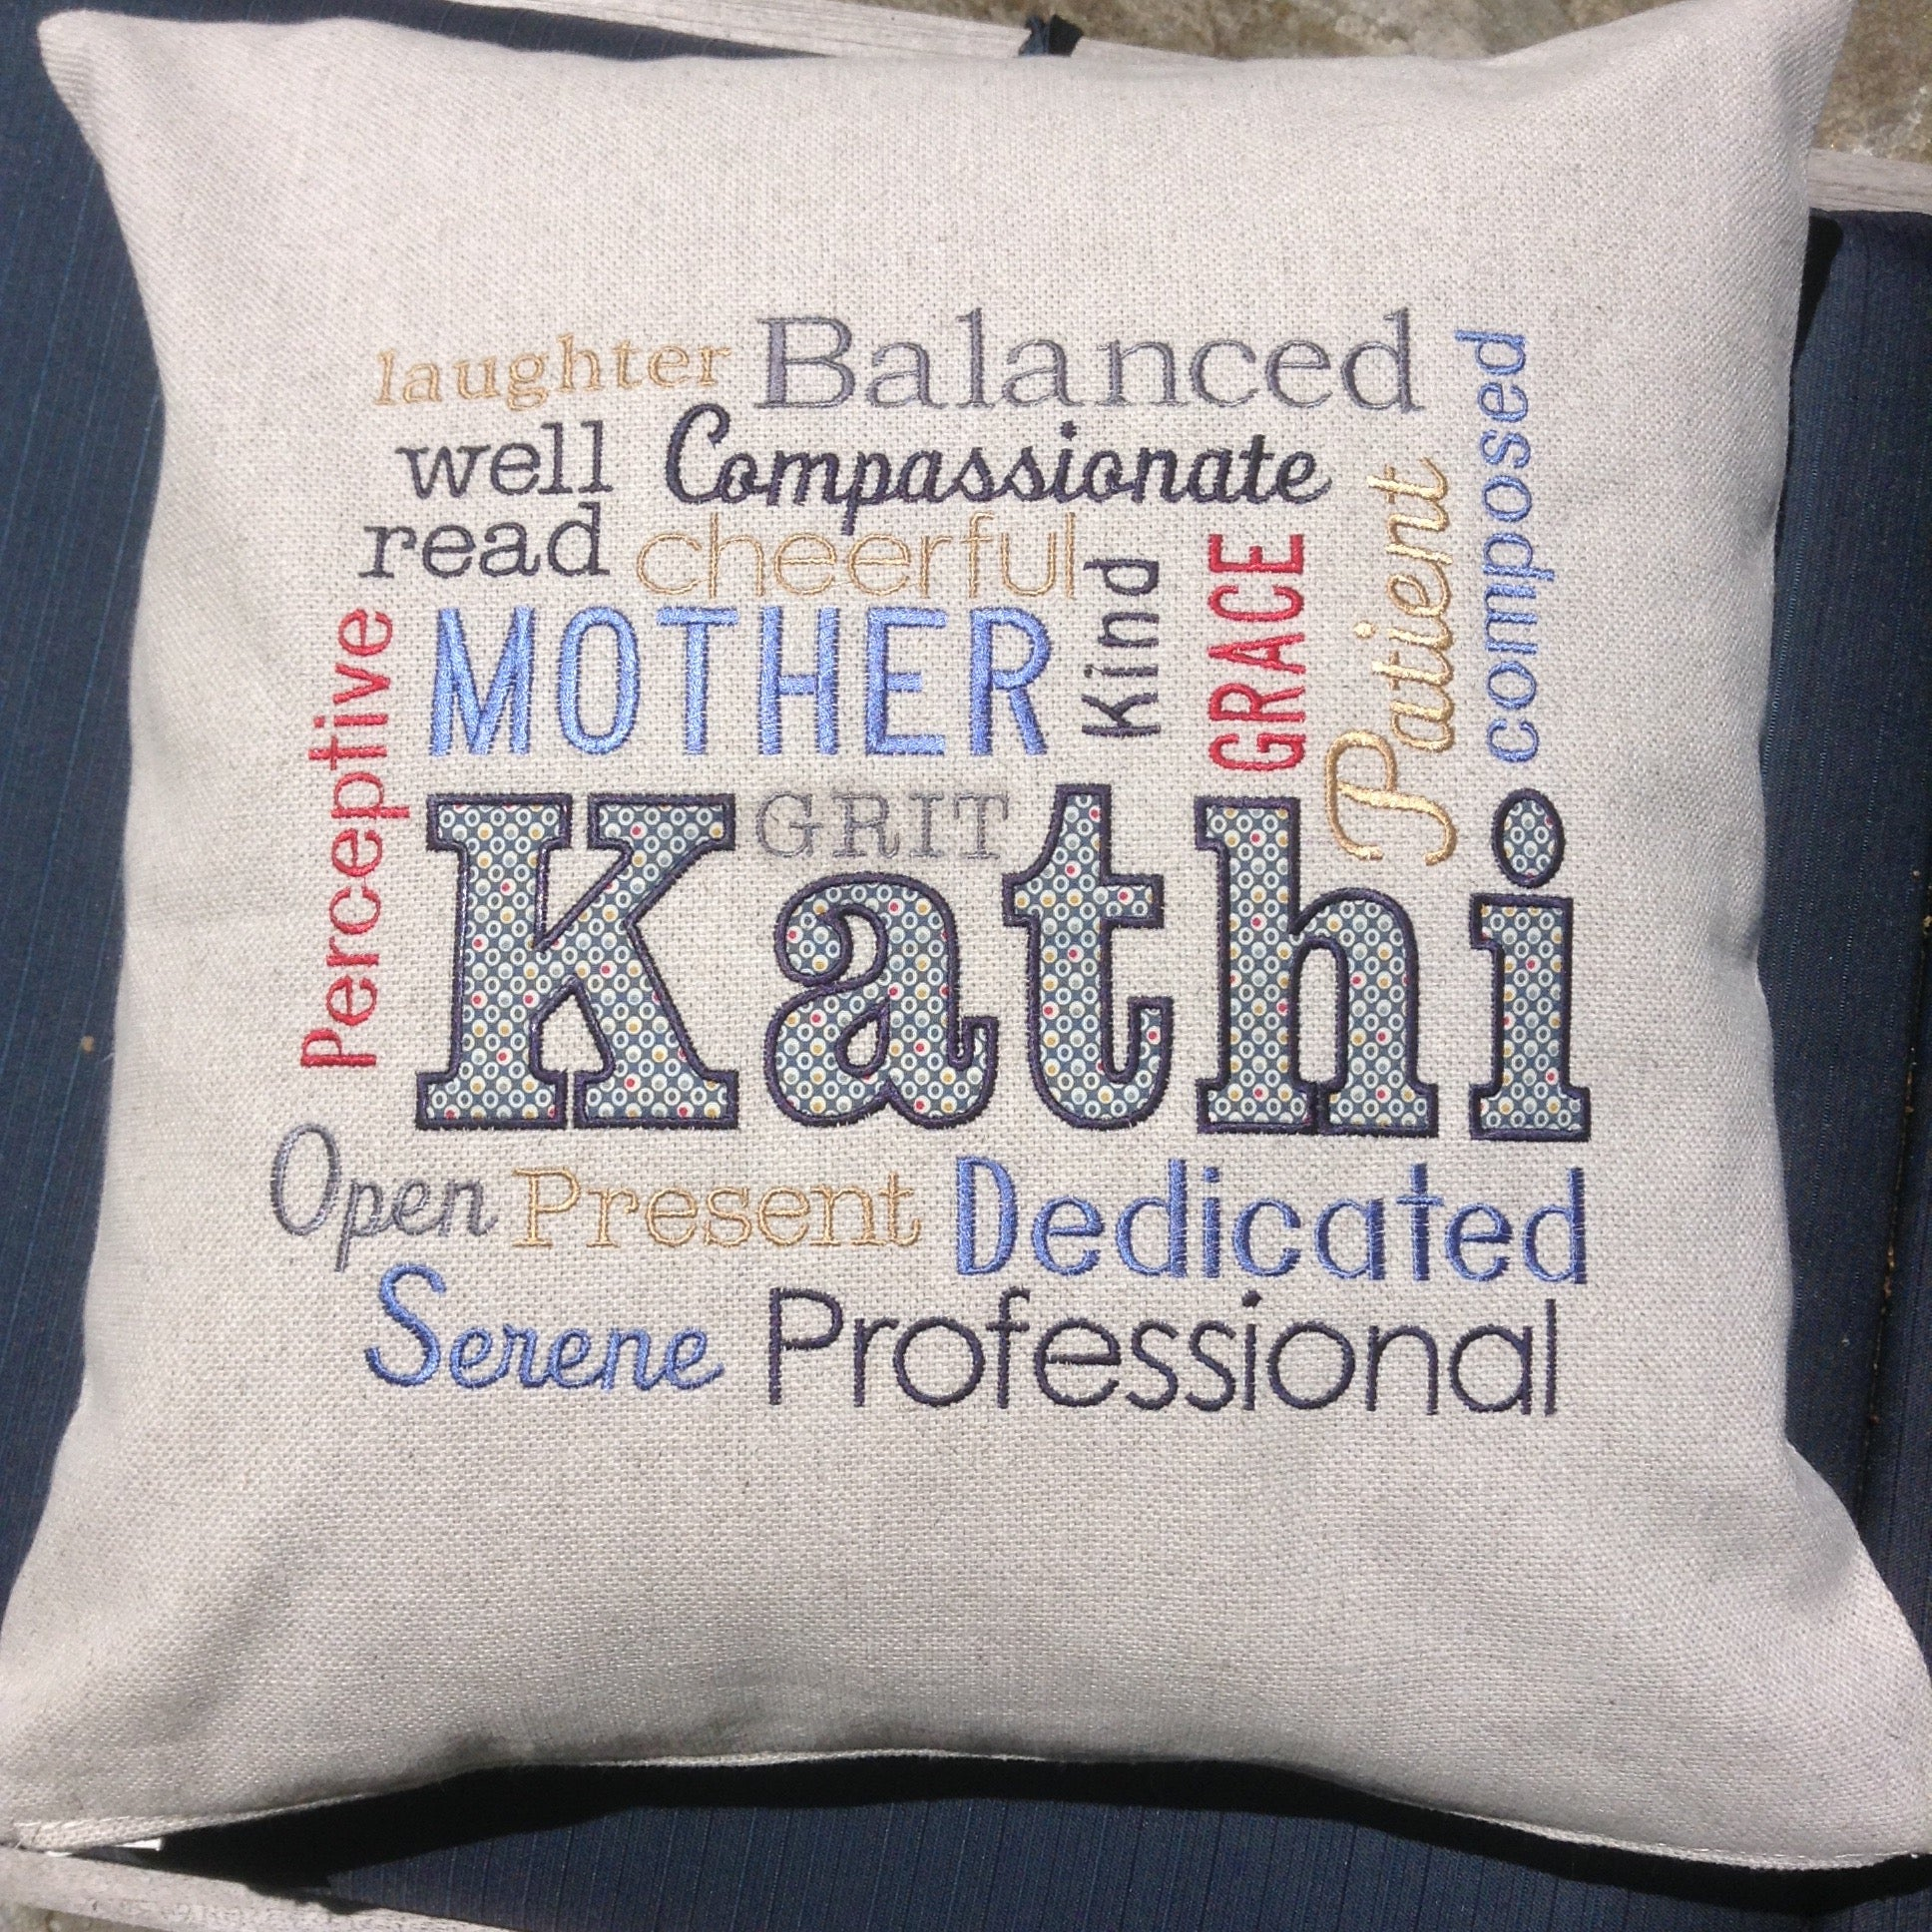 tutorial complement knock how modern designs his adler letter love way school pillows initial make jonathan pillow old off i the needlepoint to